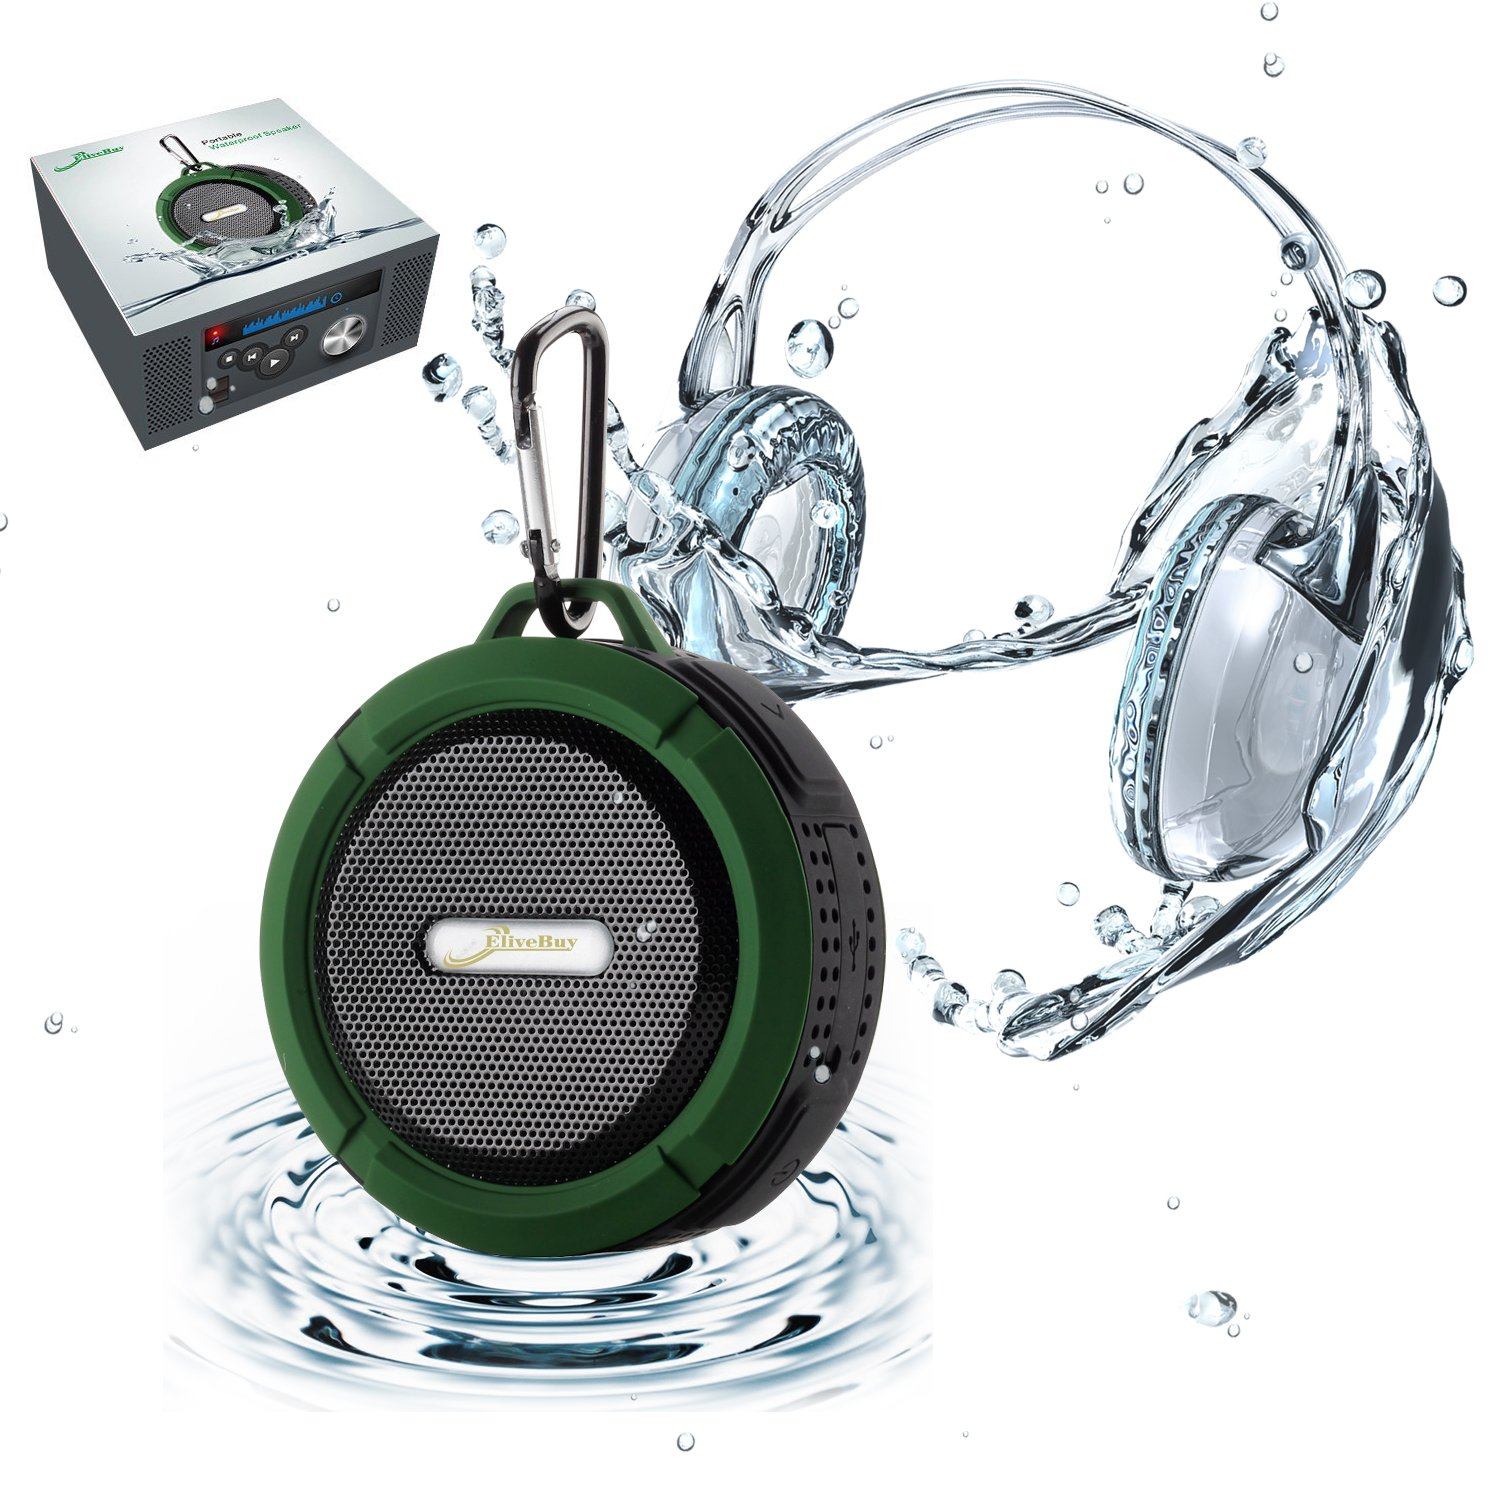 [Waterproof & Dustproof with Great Sound] Original Elivebuy® Wireless Bluetooth 3.0 Outdoor / Shower Speaker, Handsfree Portable Speakerphone with Built-in Mic, Control Buttons and Dedicated Suction Cup for Showers, Bathroom, Pool, Boat, Car, Beach, & Ou soundbot® sb510 hd water resistant bluetooth 3 0 shower speaker handsfree portable speakerphone with built in mic 6hrs of playtime control buttons and dedicated suction cup for showers bathroom pool boat car beach